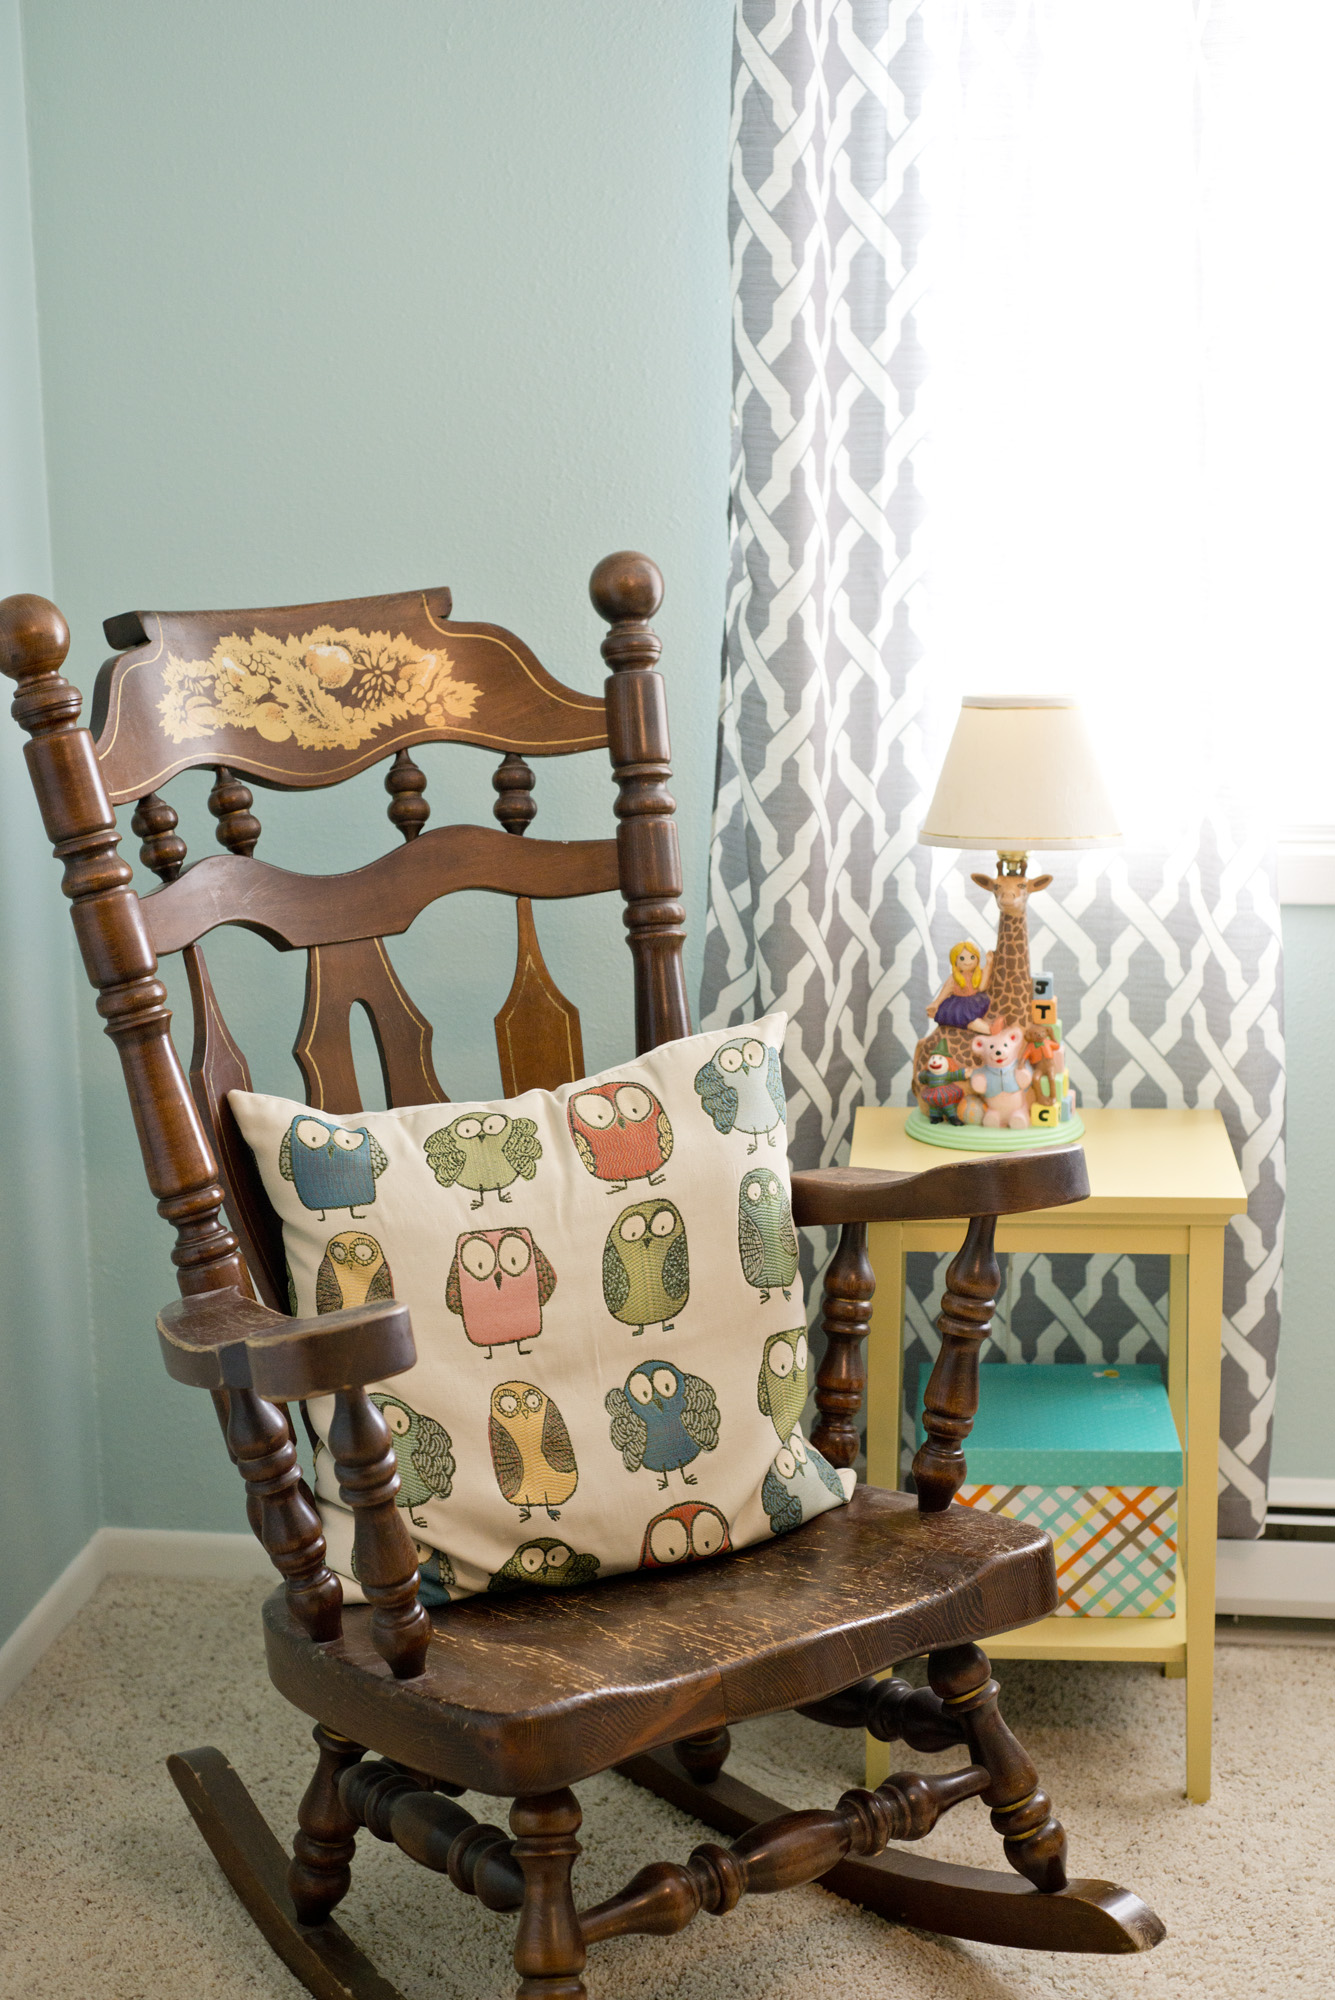 Rocking Chair For Mom And Baby Cool Childus Rocking Chair Puzzle